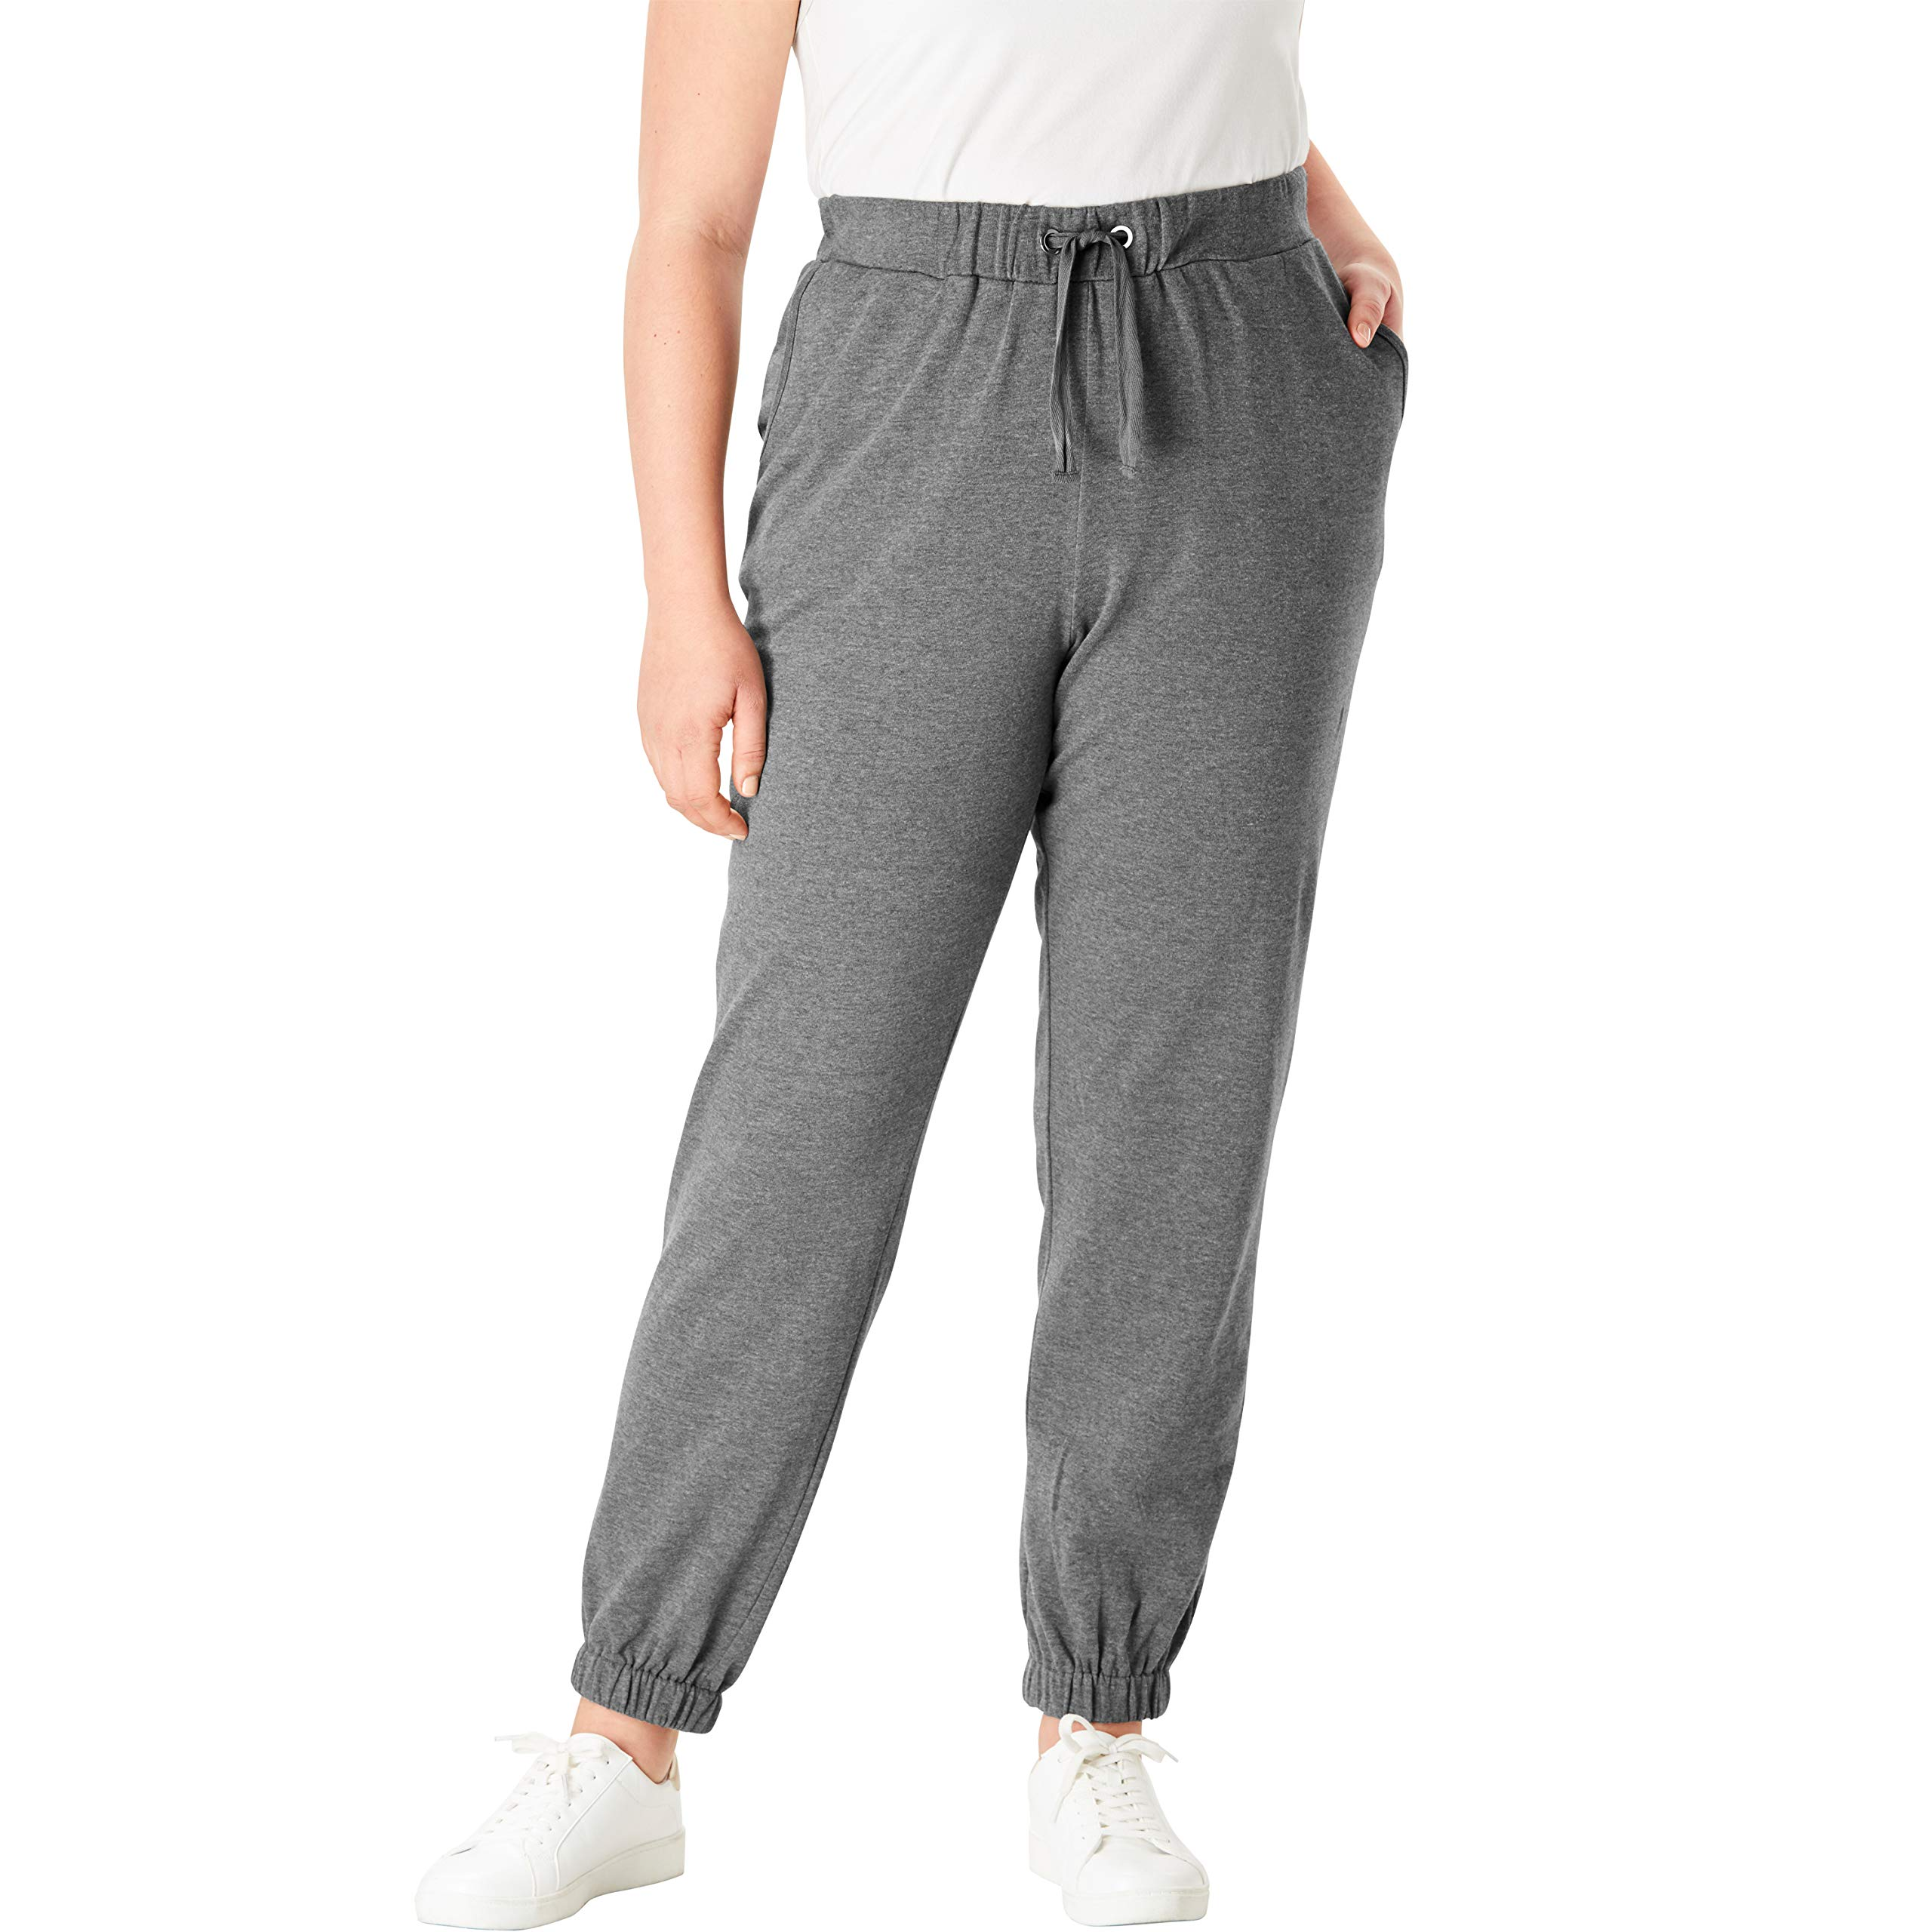 Roamans Women's Plus Size French Terry Jogger - Medium Heather Grey, 22/24 by Roamans